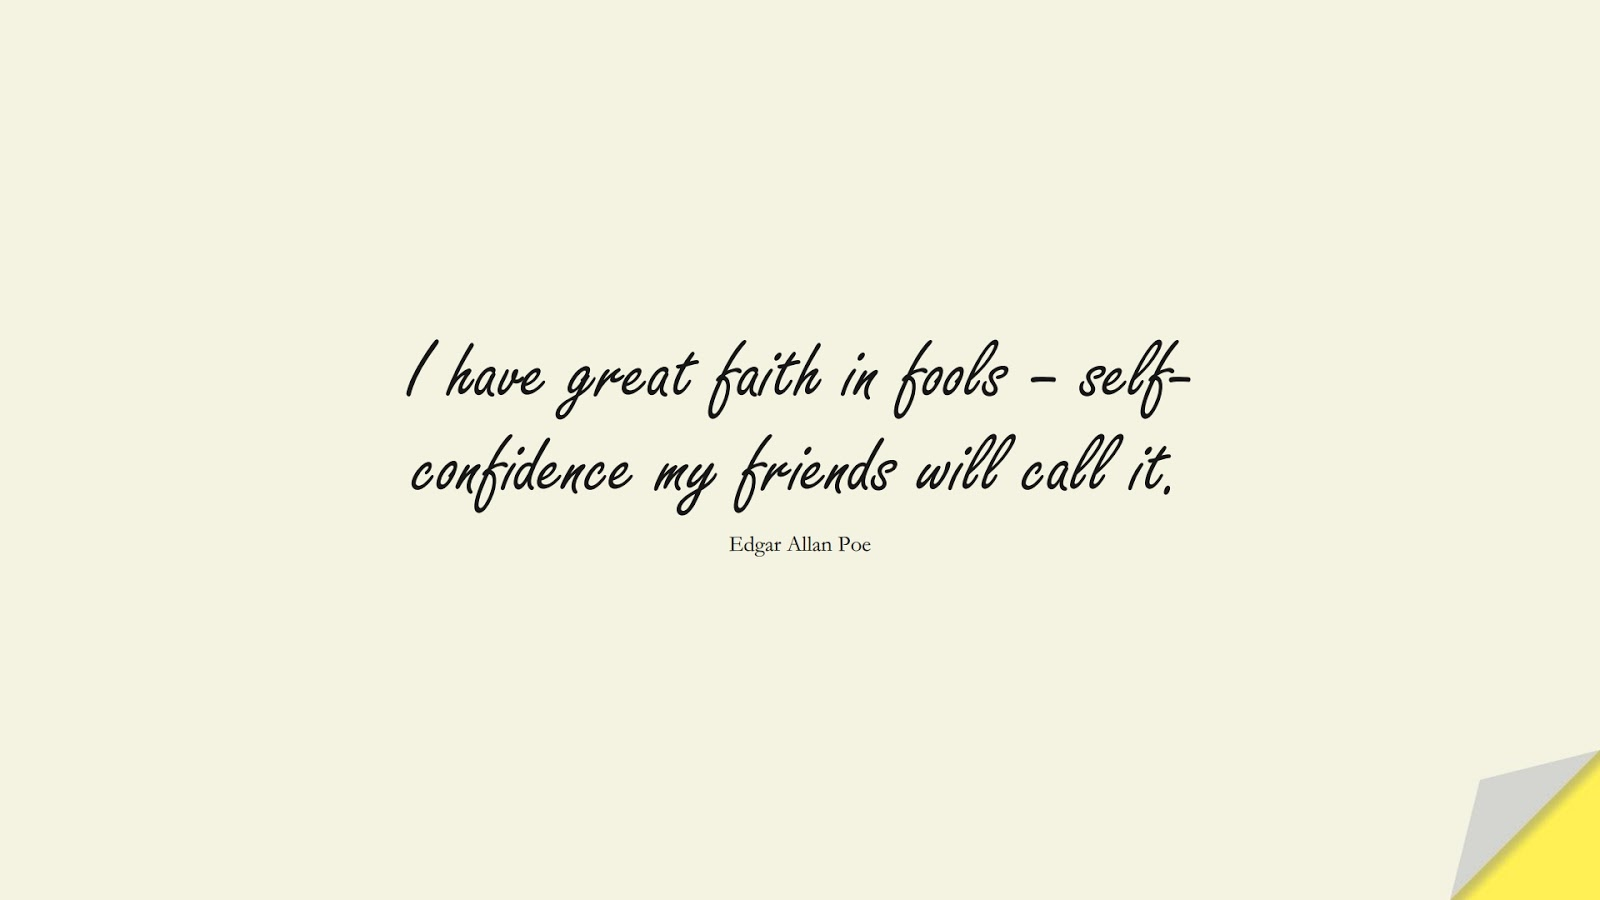 I have great faith in fools – self-confidence my friends will call it. (Edgar Allan Poe);  #ShortQuotes